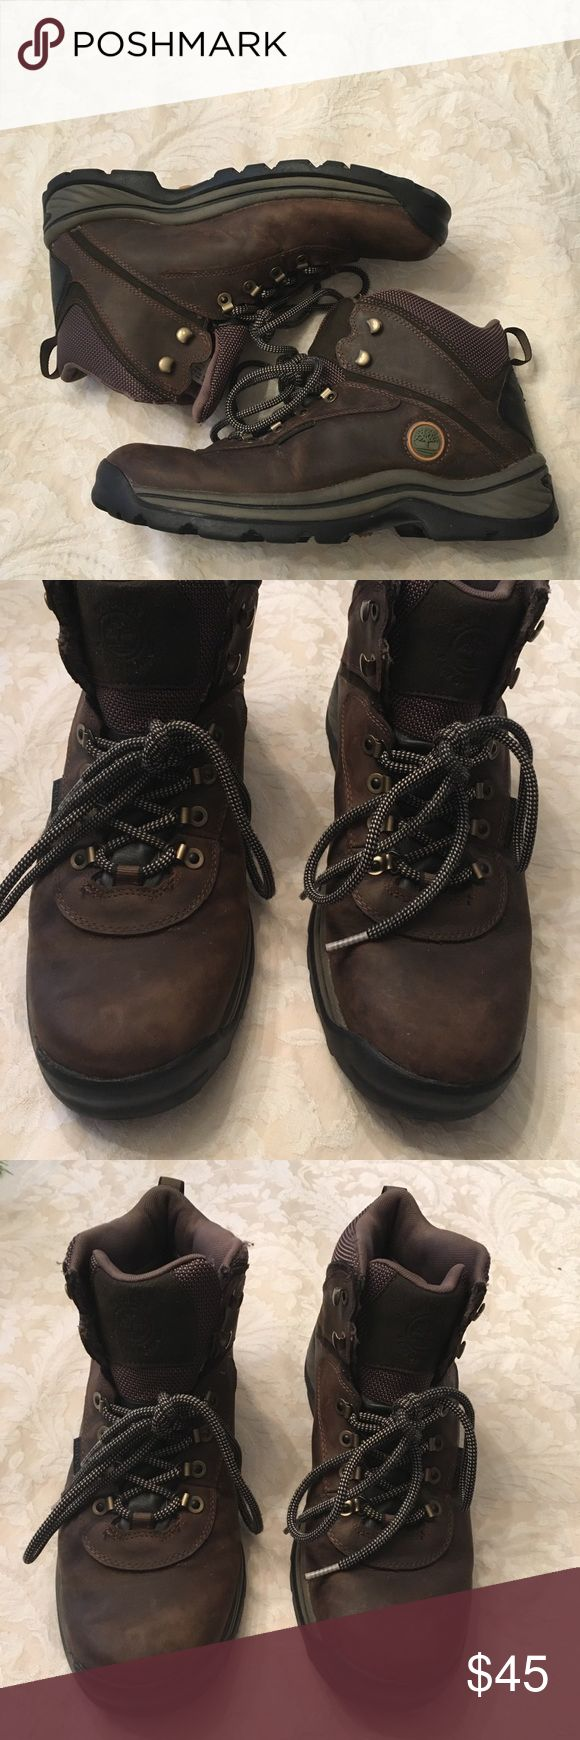 Timberland White Ledge men's Waterproof Boot Great condition.   Bought for my son and he may have worn them twice.  Leather/Textile with Rubber sole.  Hiking boots with oiled-leather finish featuring lace up vamp and rear pull loop.   Does not come with box. Timberland Shoes Boots